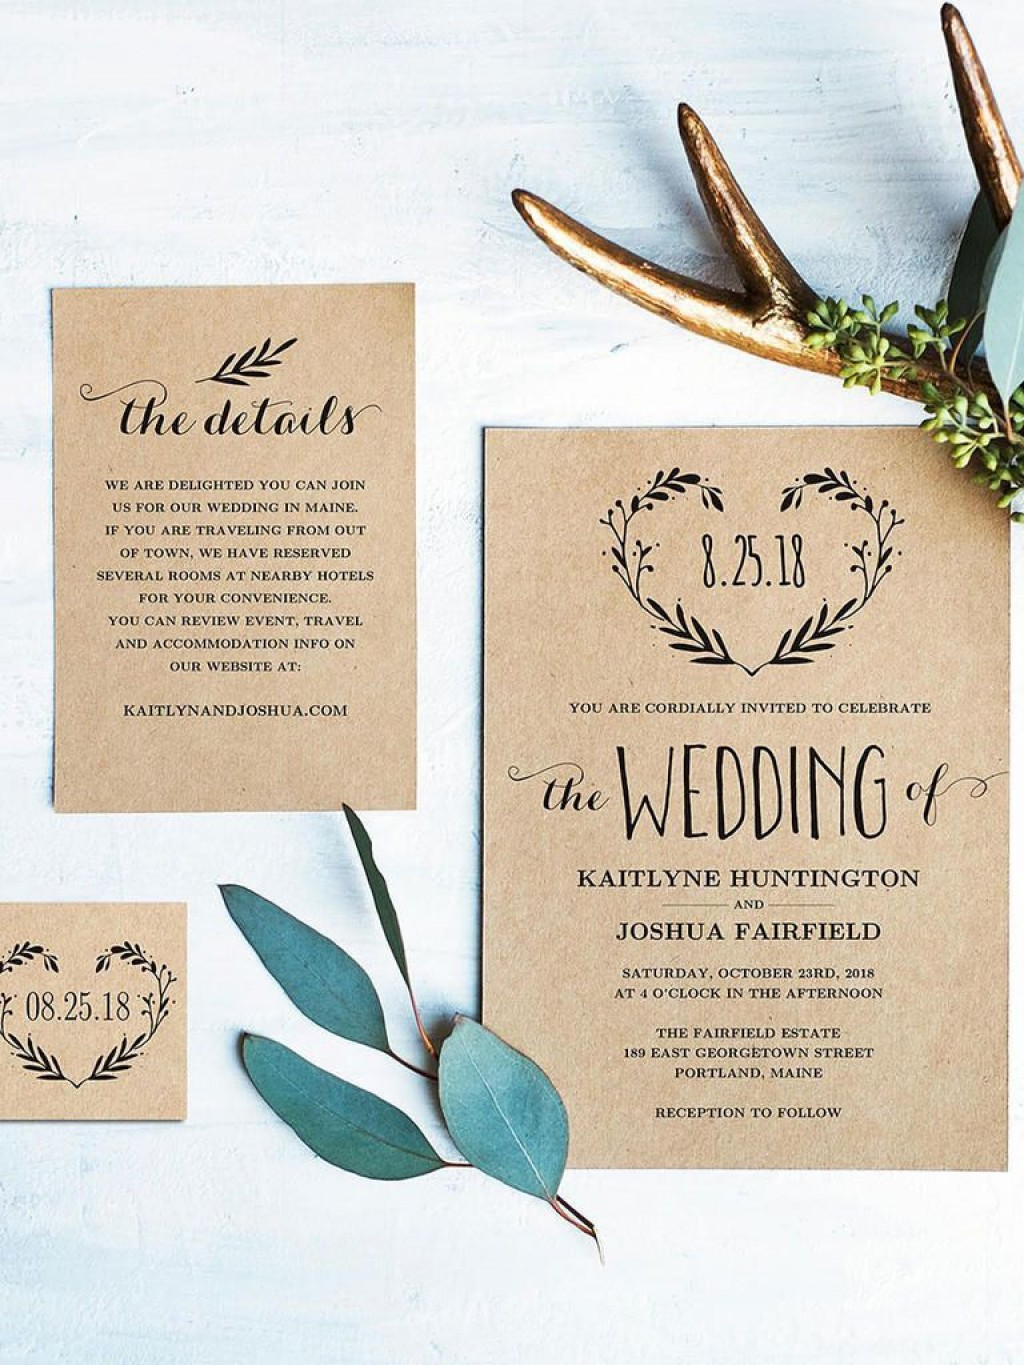 000 Unique Rustic Wedding Invitation Template Highest Clarity  Templates Free For Word Maker PhotoshopLarge